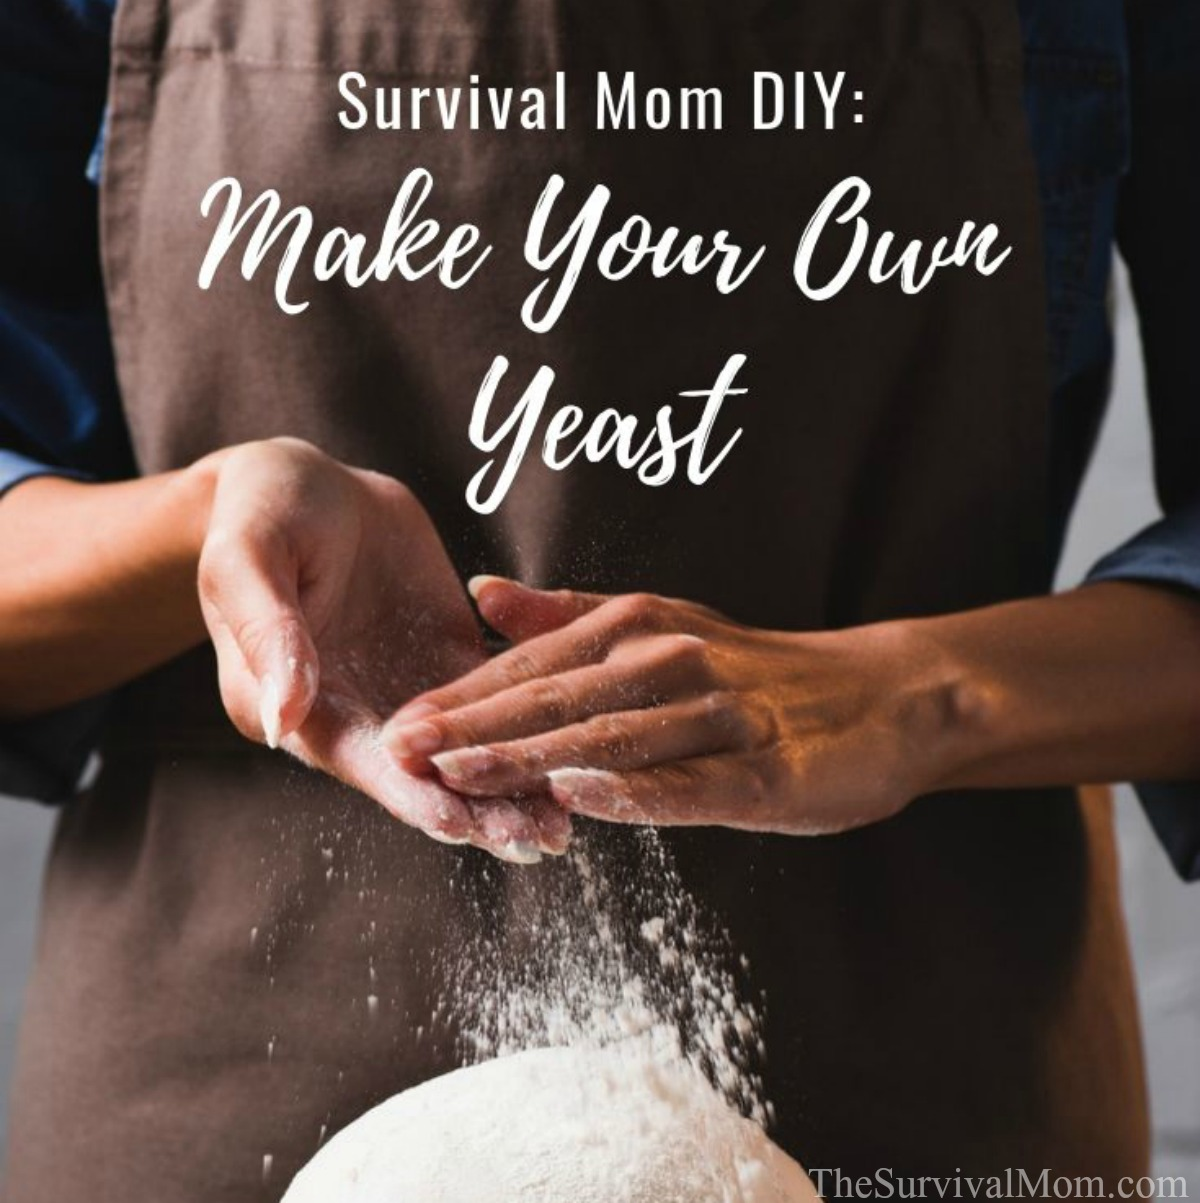 Survival Mom DIY Make Your Own Yeast via The Survival Mom